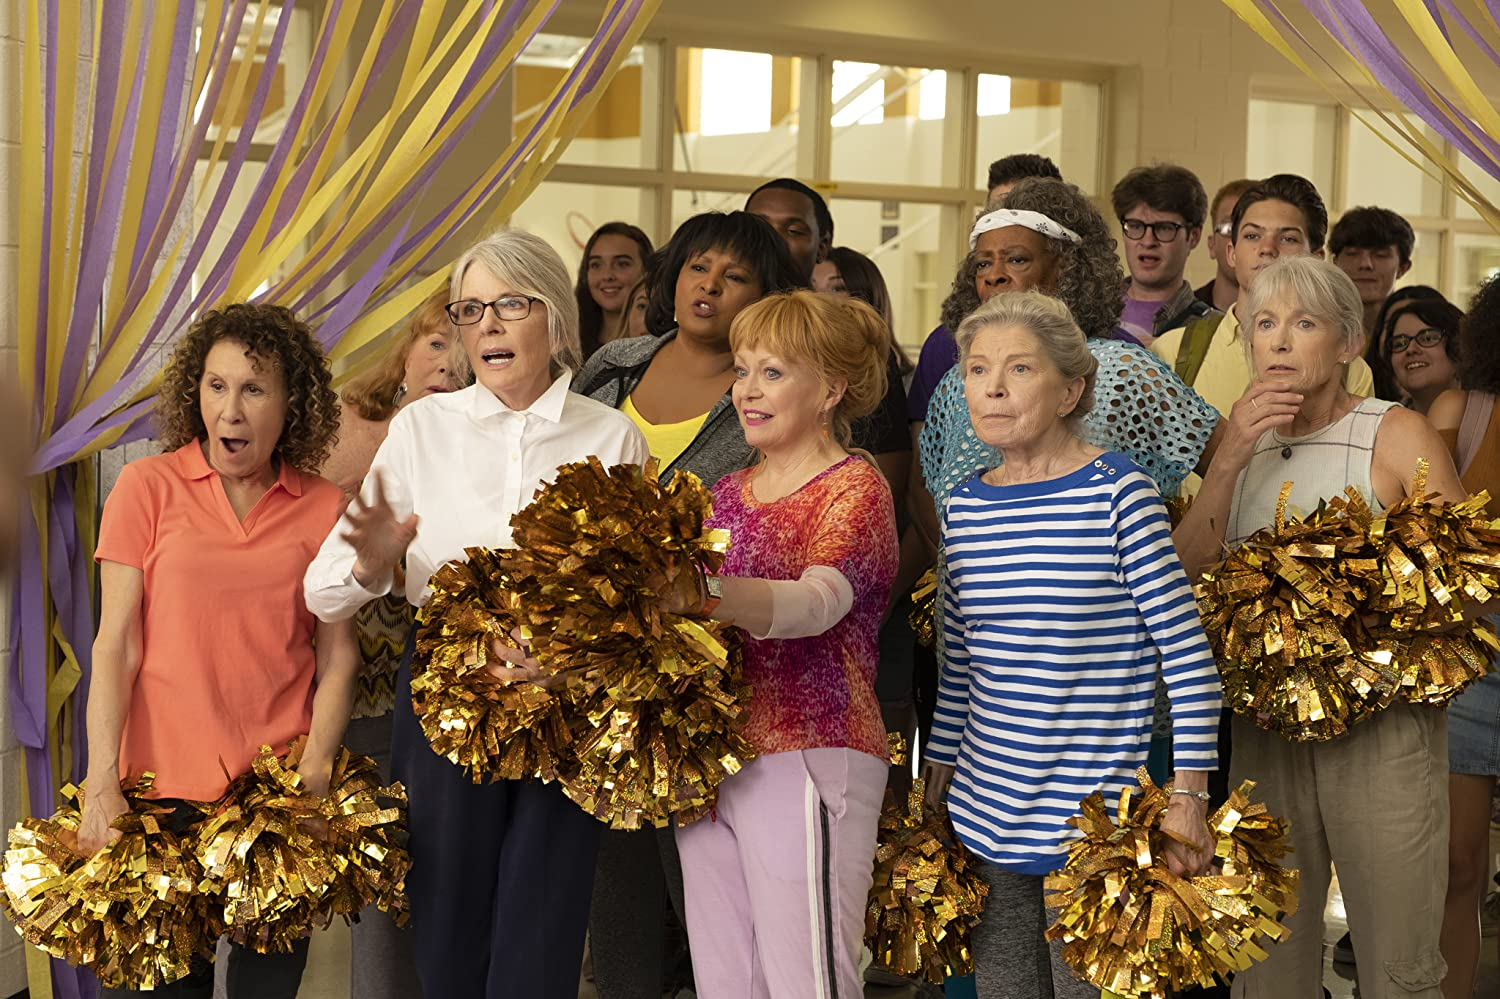 Pam Grier, Diane Keaton, Patricia French, Rhea Perlman, Phyllis Somerville, Carol Sutton, Jacki Weaver, and Ginny MacColl in Poms (2019)